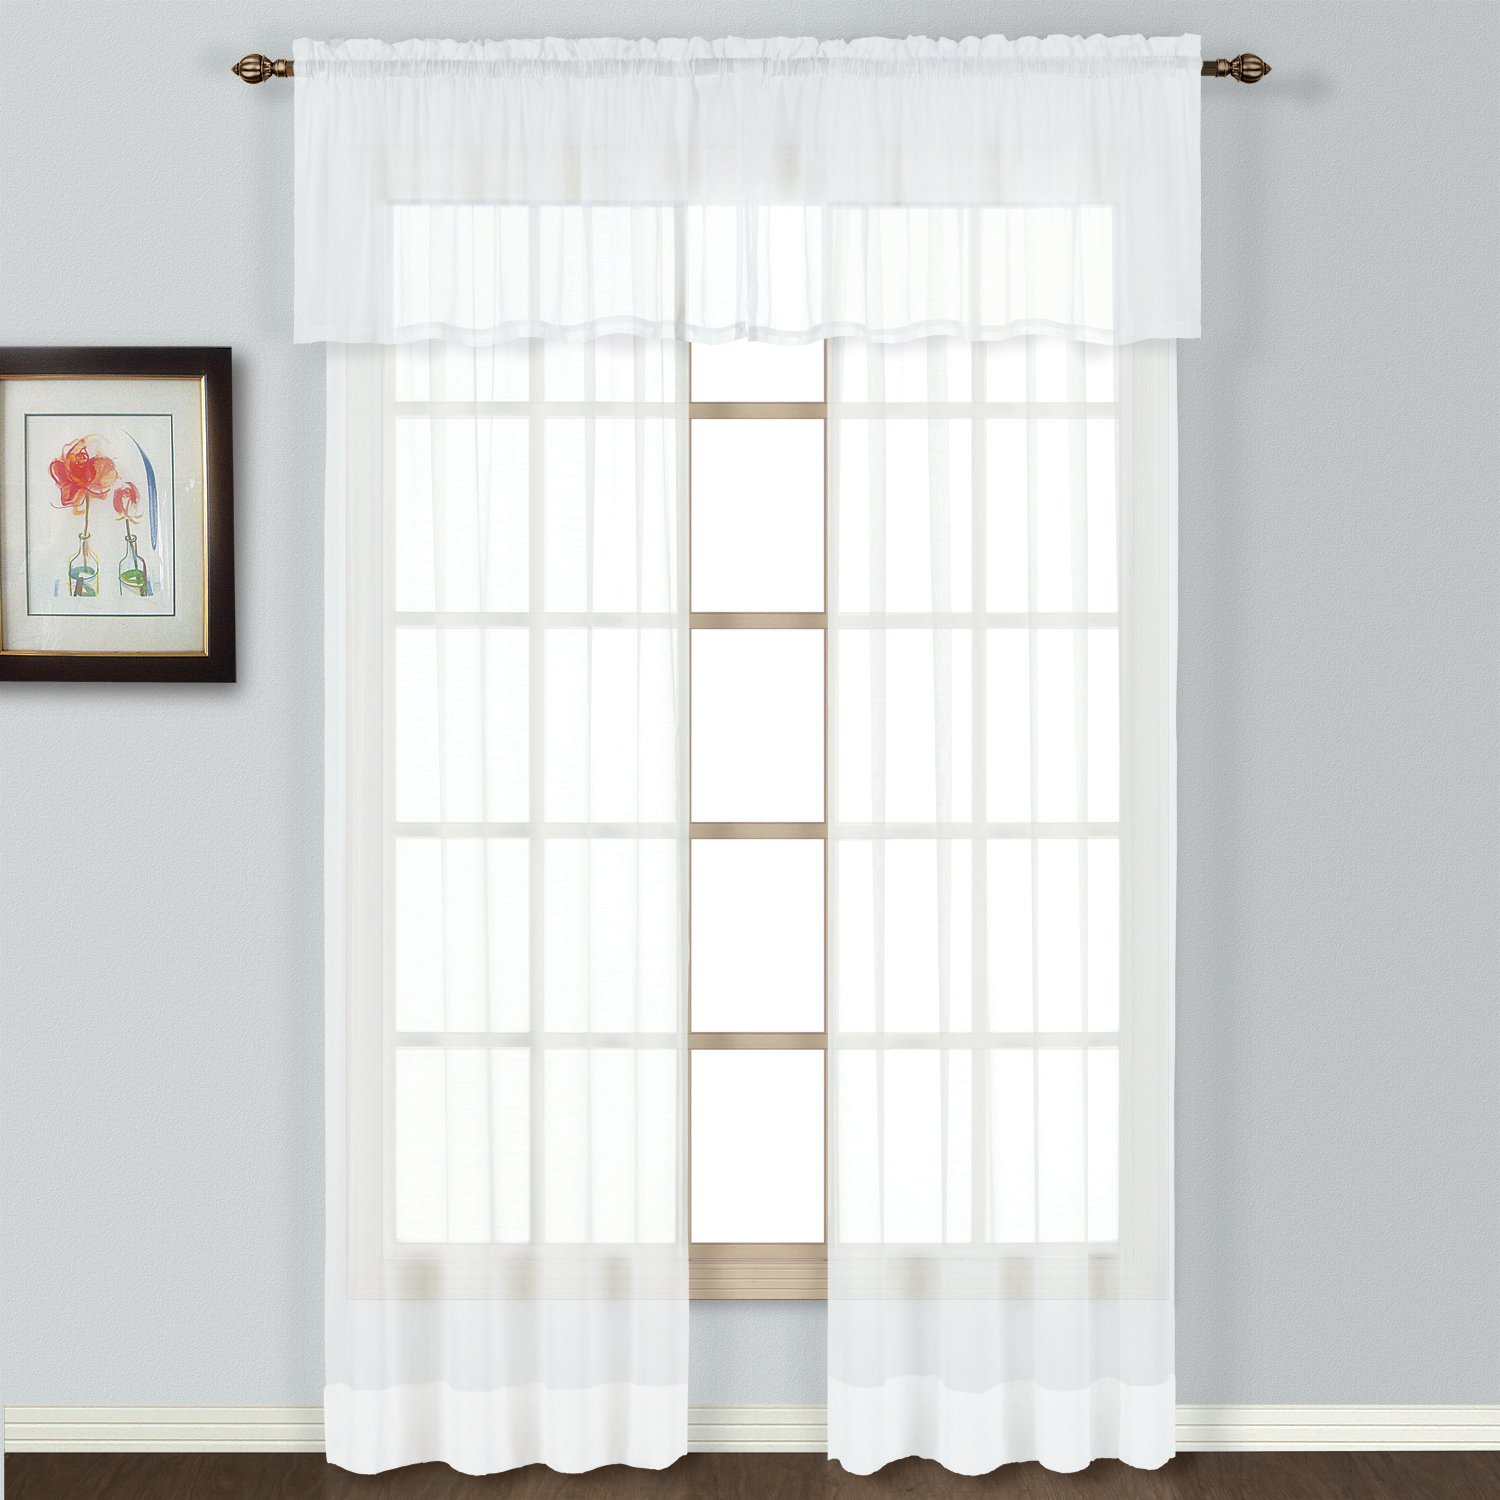 American Curtain and Home Semi-Sheer Window Treatment Valance, 54-Inch by 16-Inch, White by